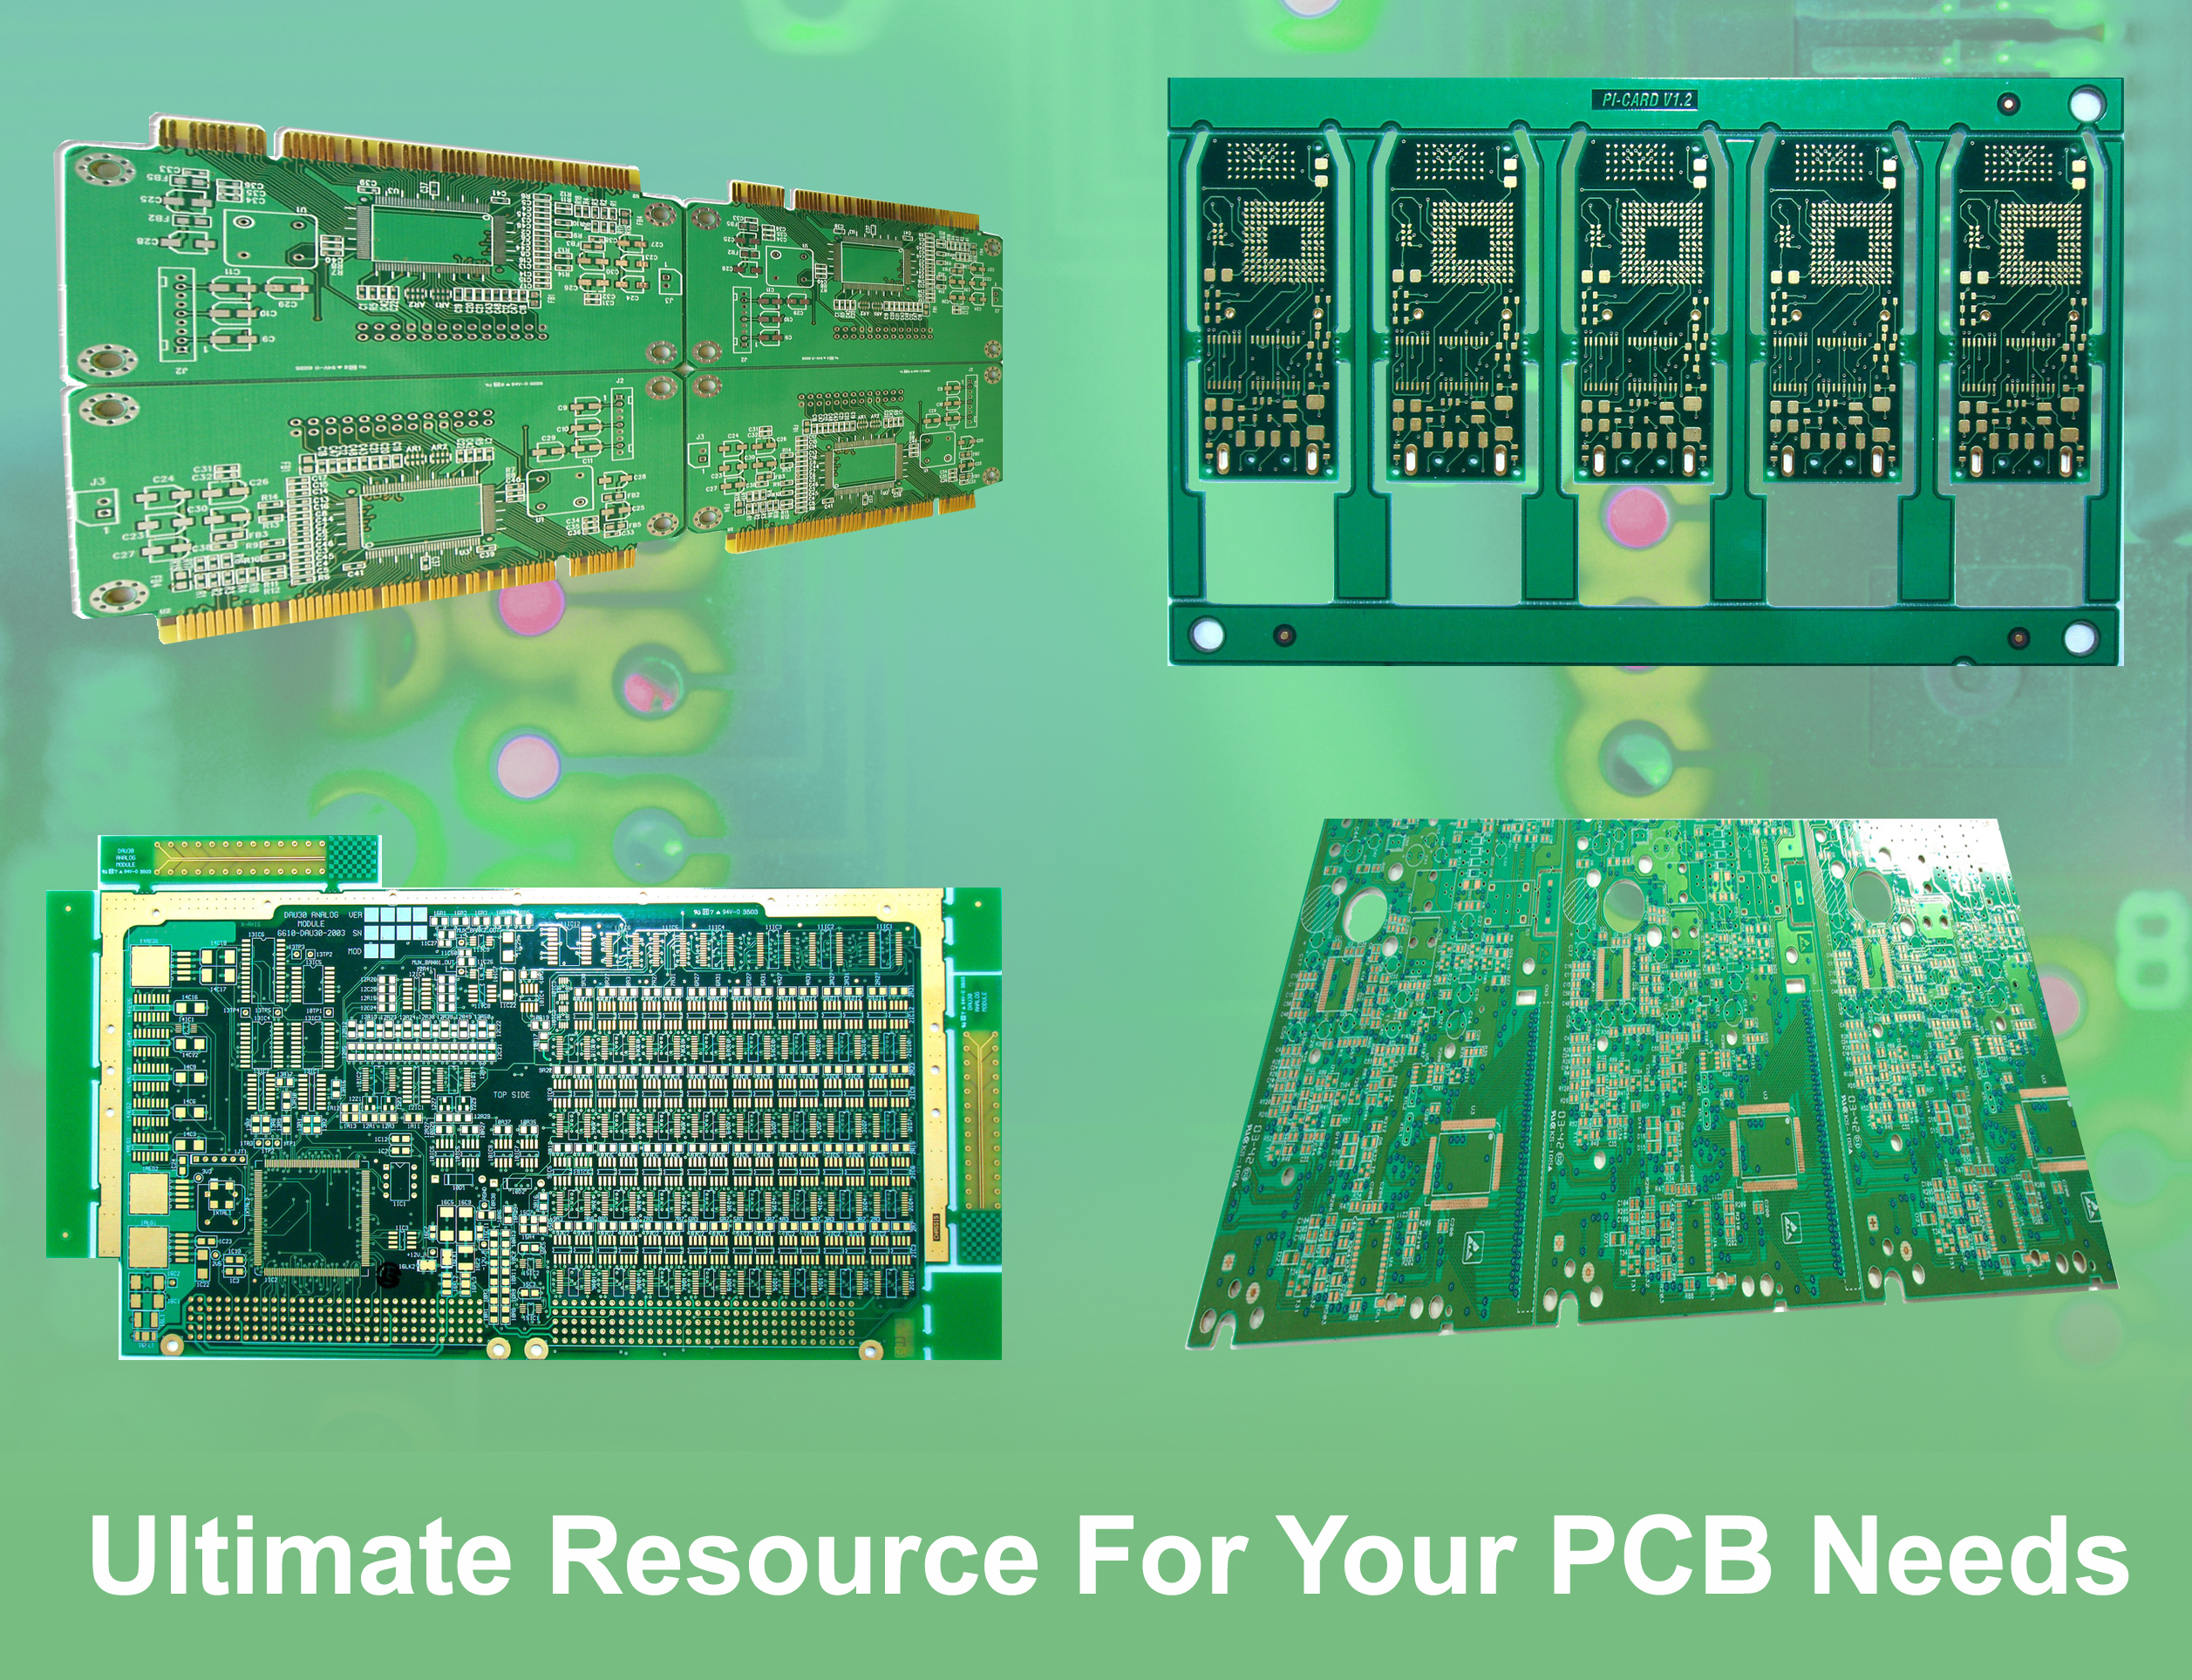 Business Products International Trade Administration Printedcircuitboardassemblylargejpg Kp A152 Pcbprinted Circuit Board Assemblybr Larger Photo